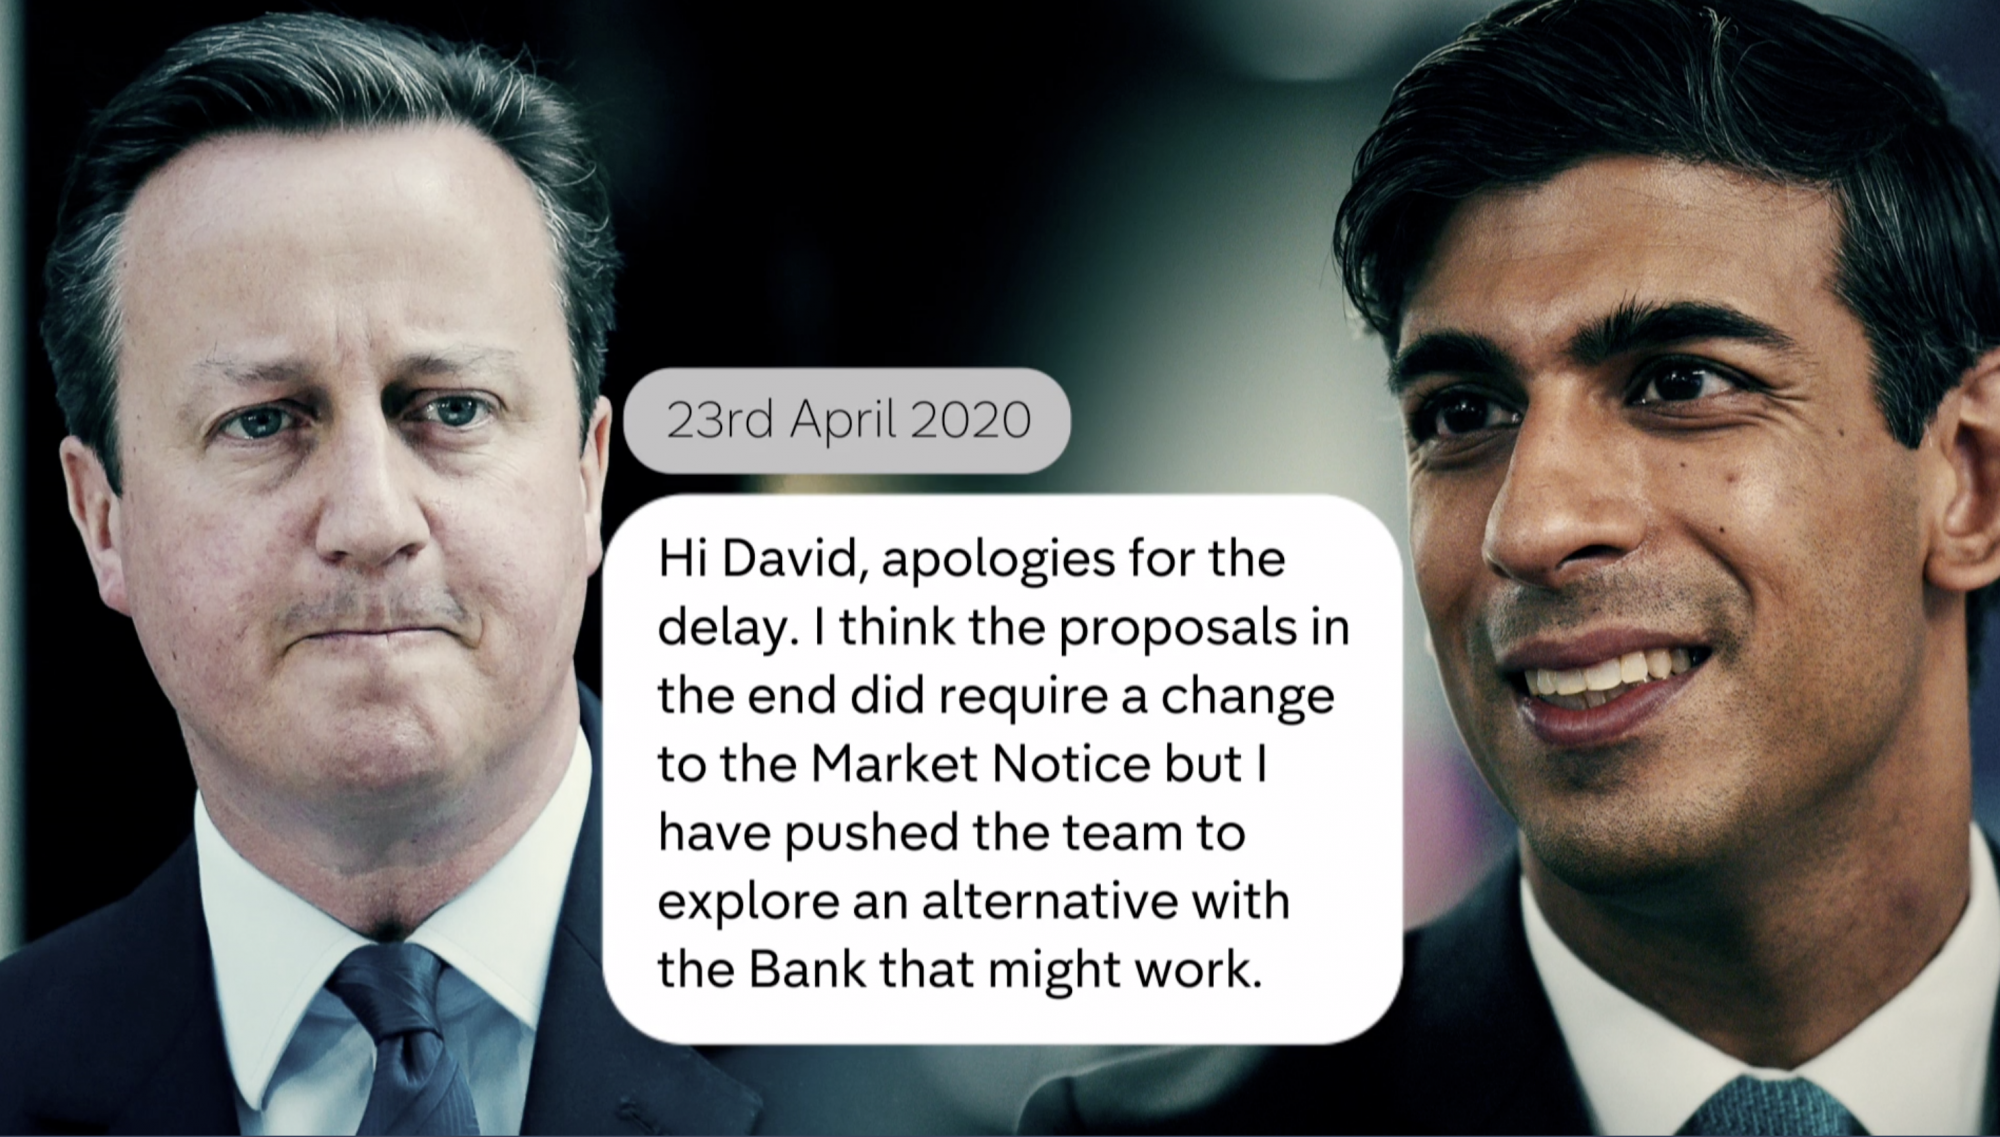 Chancellor publishes David Cameron text messages amid lobbying row